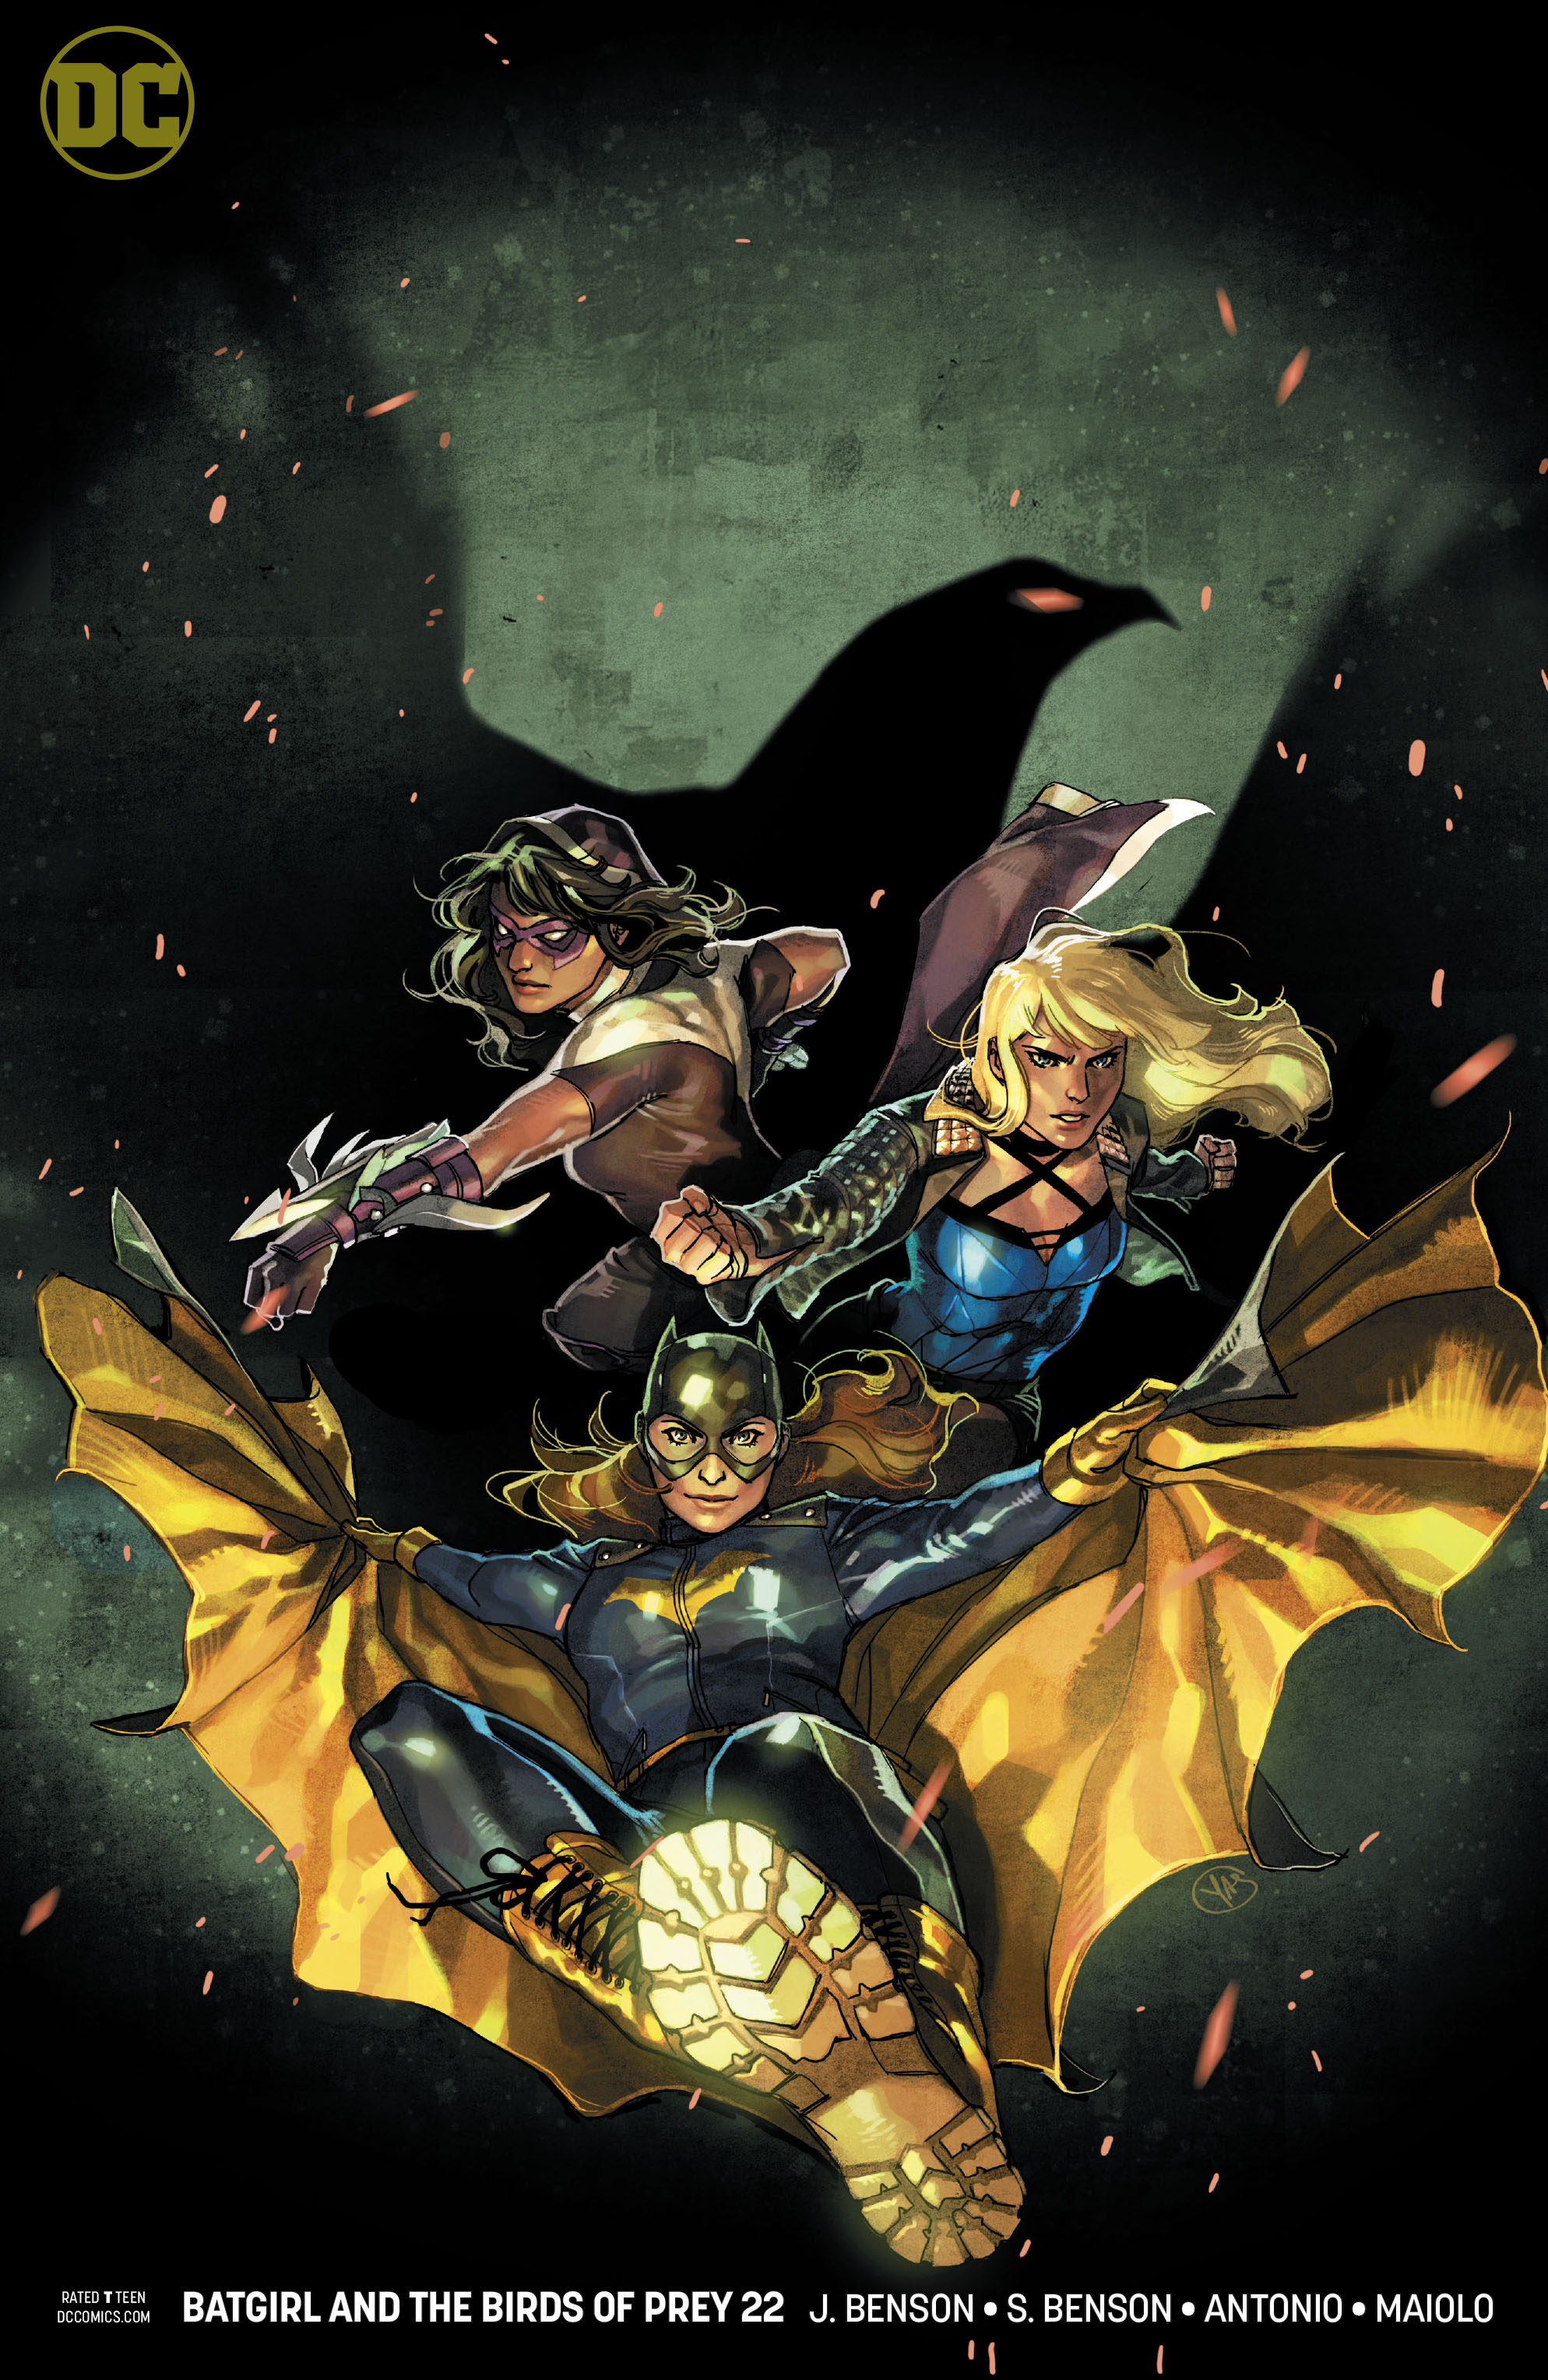 BATGIRL AND THE BIRDS OF PREY #22 VAR ED